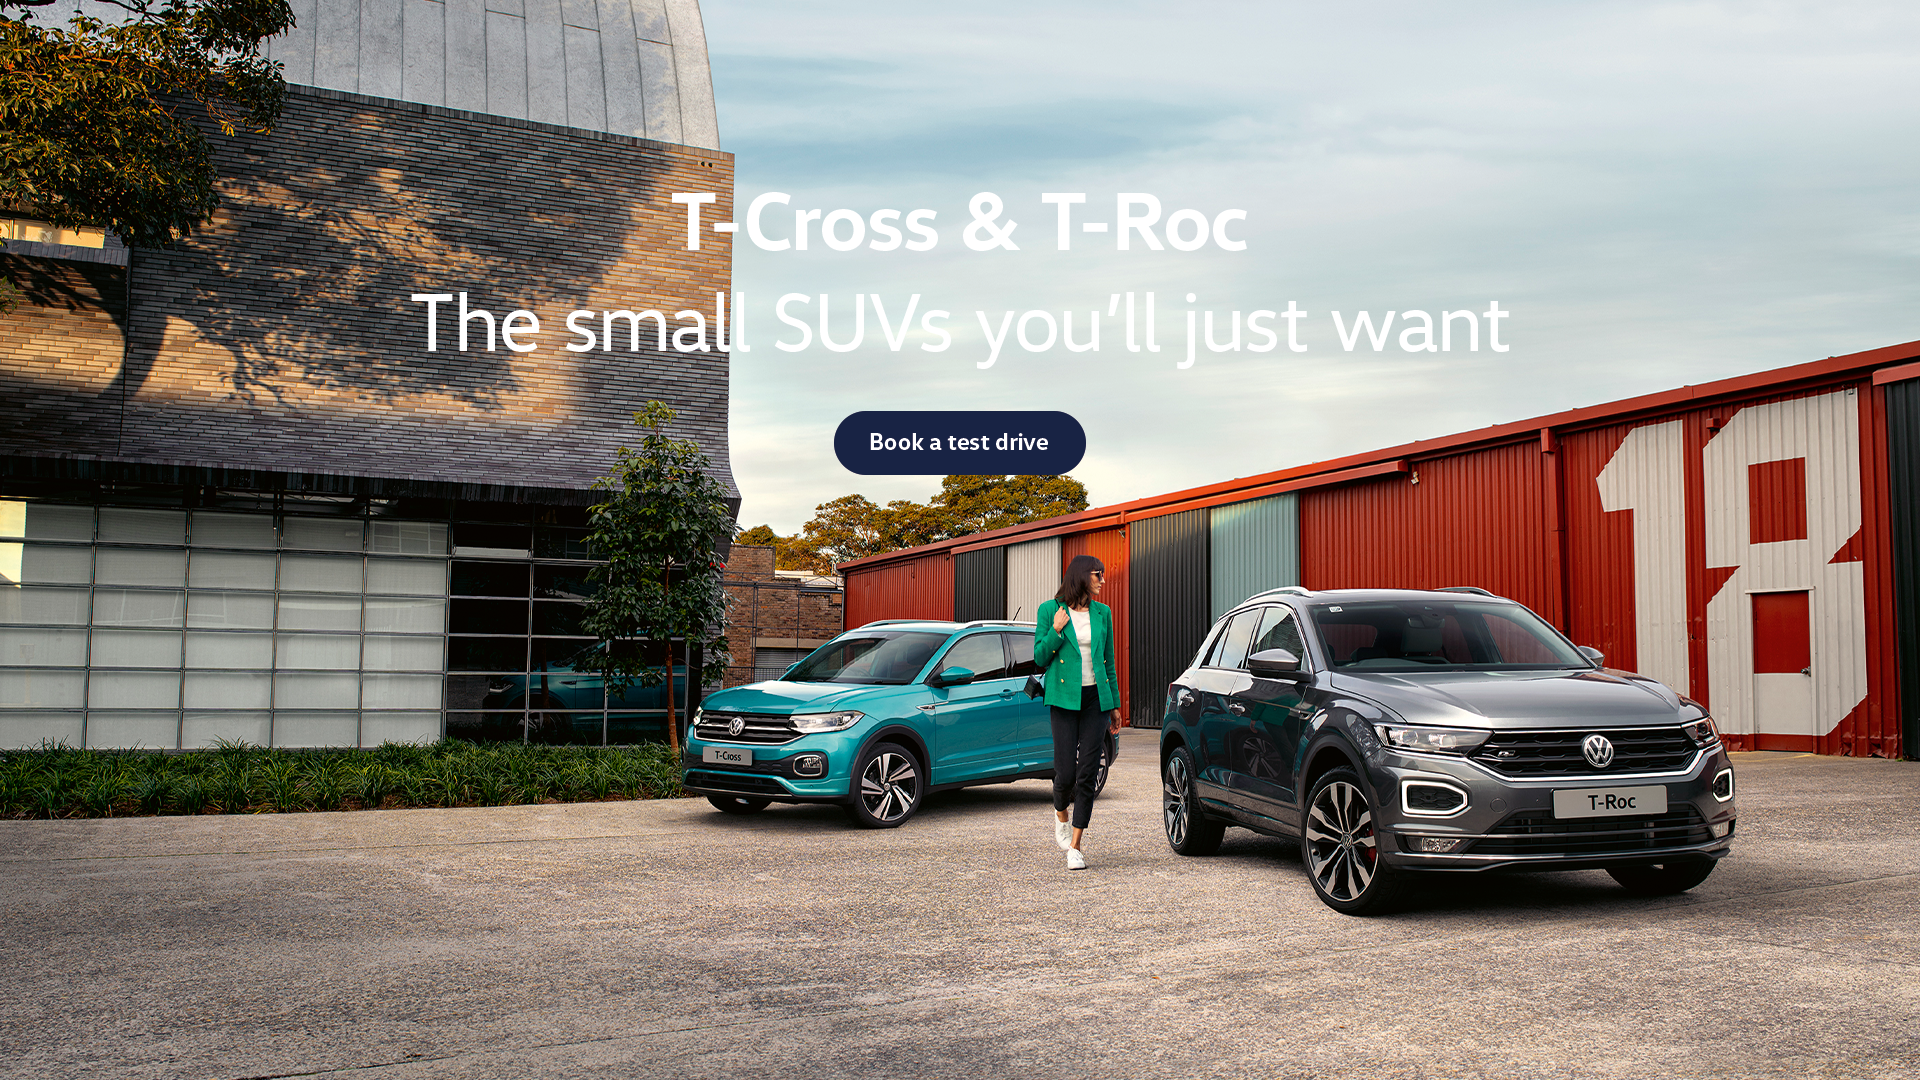 Volkswagen Small SUV range. Test drive today at Westpoint Volkswagen.